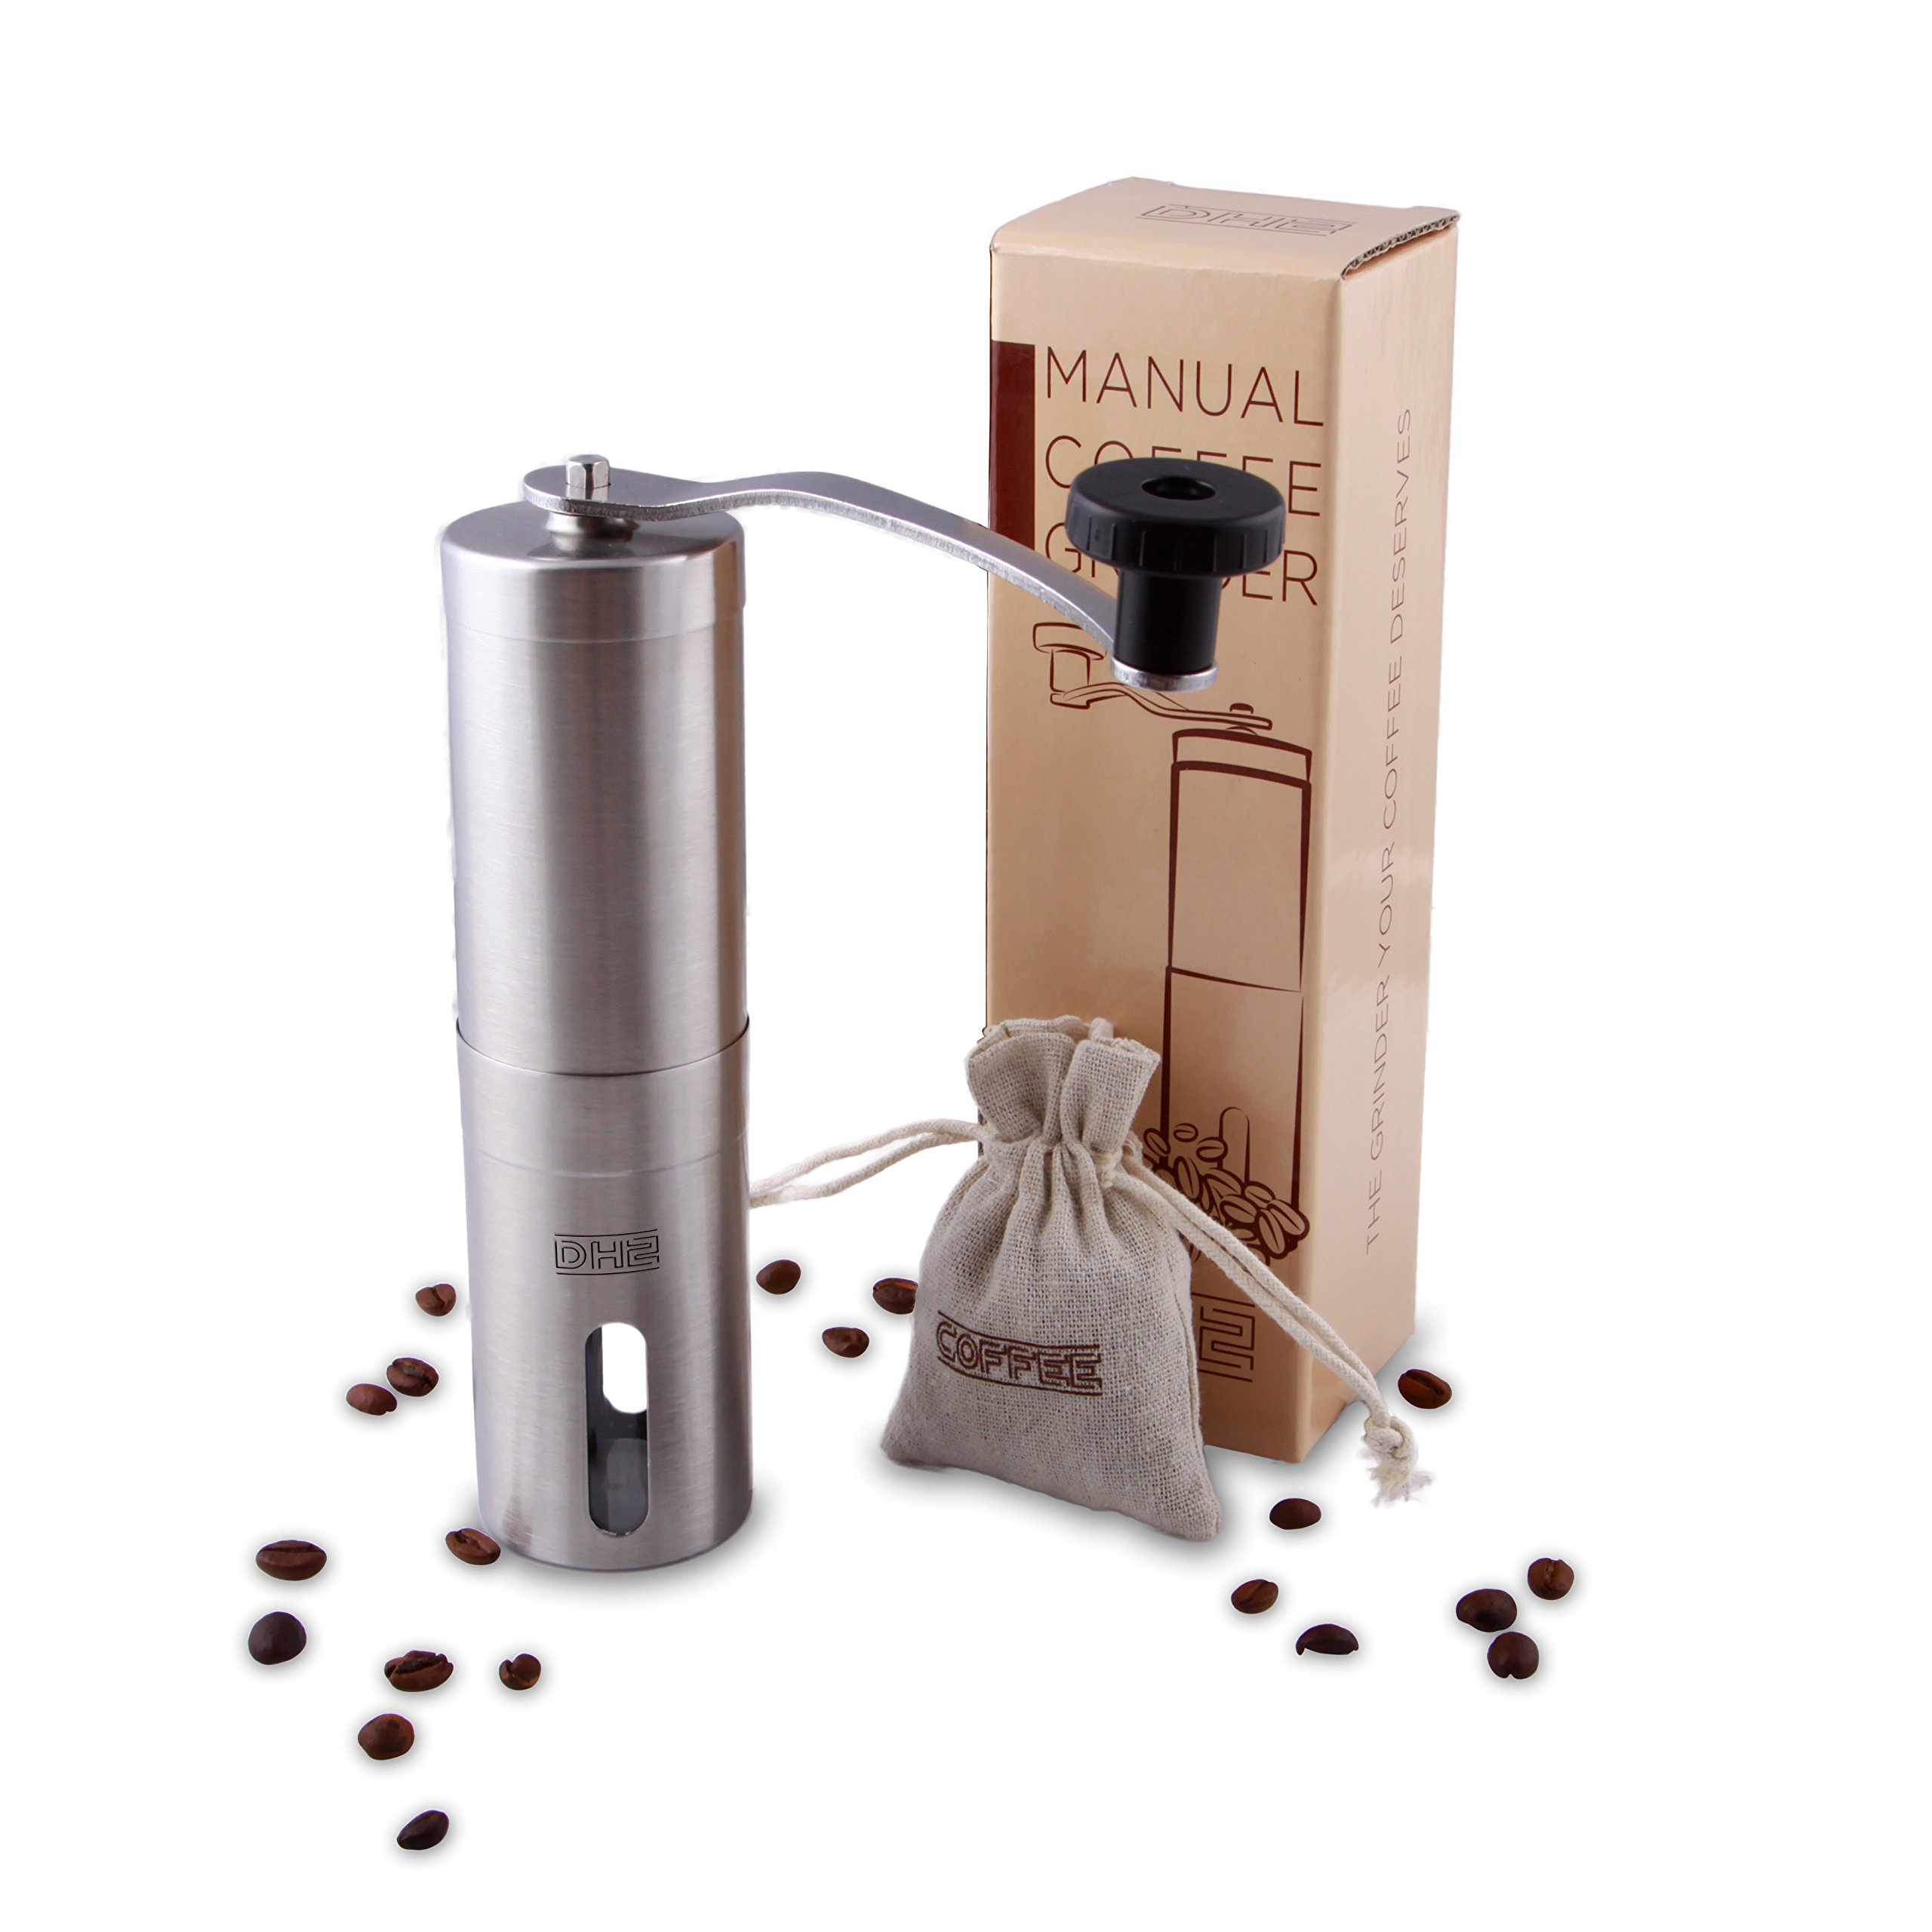 DH2 Manual Coffee Grinder with Ceramic Burrs, Brushed Stainless Steel, FDA Approved, Portable and Light, GIFT - Coffee Beans Storage Bag